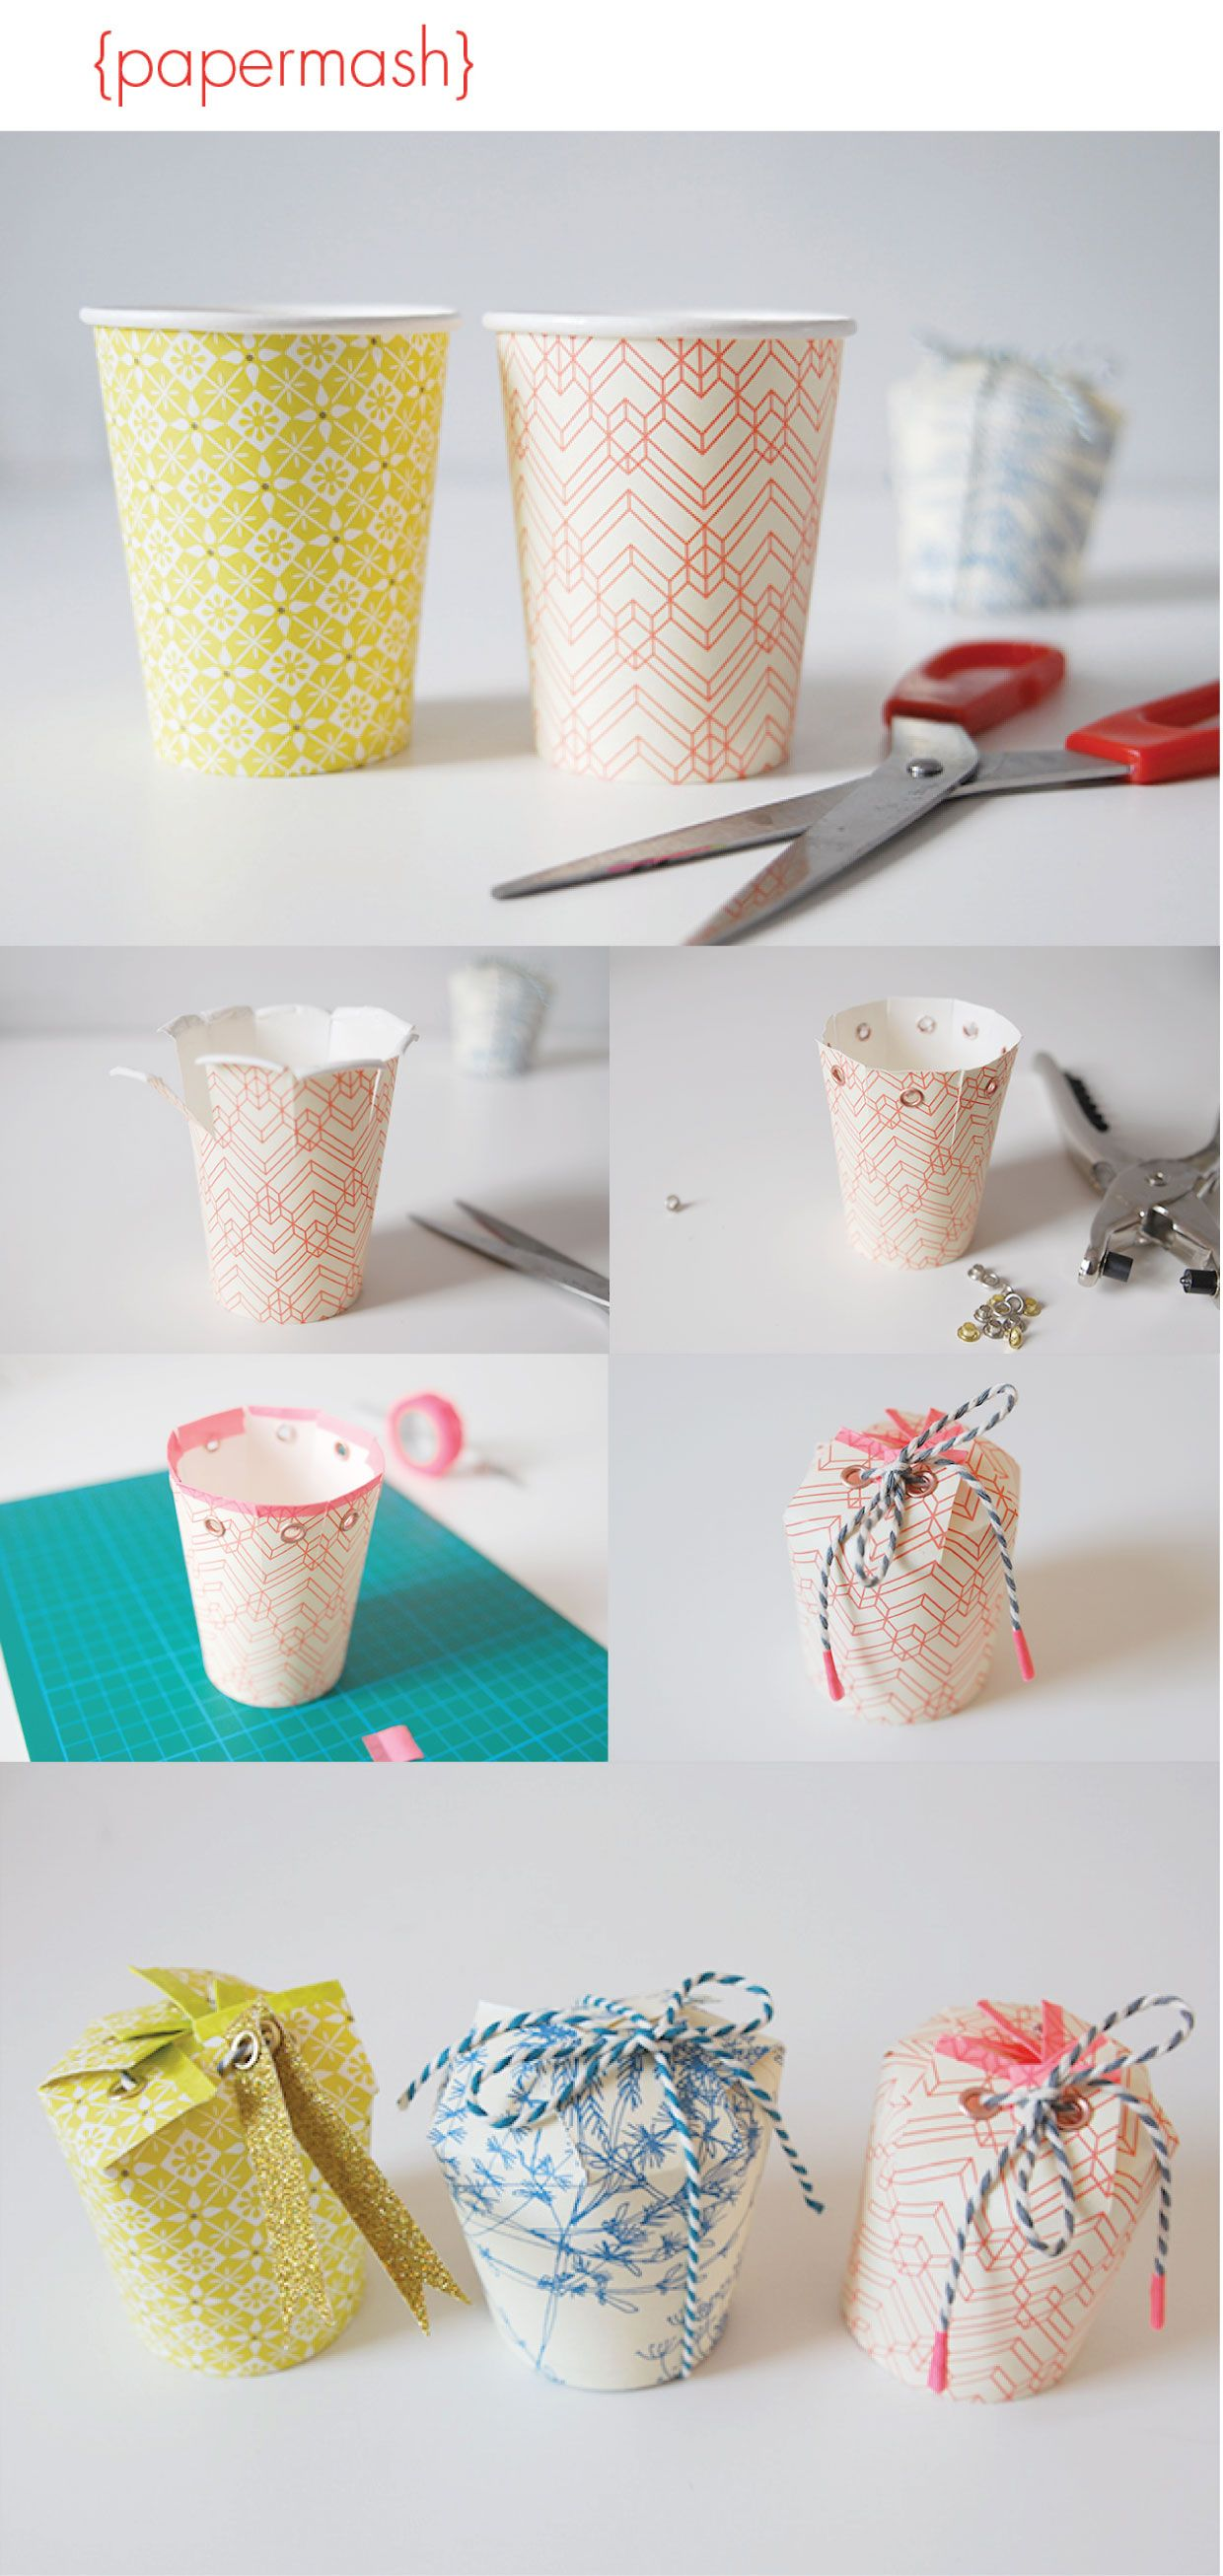 Papermash paper cup gift box diy regalitos rococ pinterest papermash paper cup gift box diy jeuxipadfo Image collections